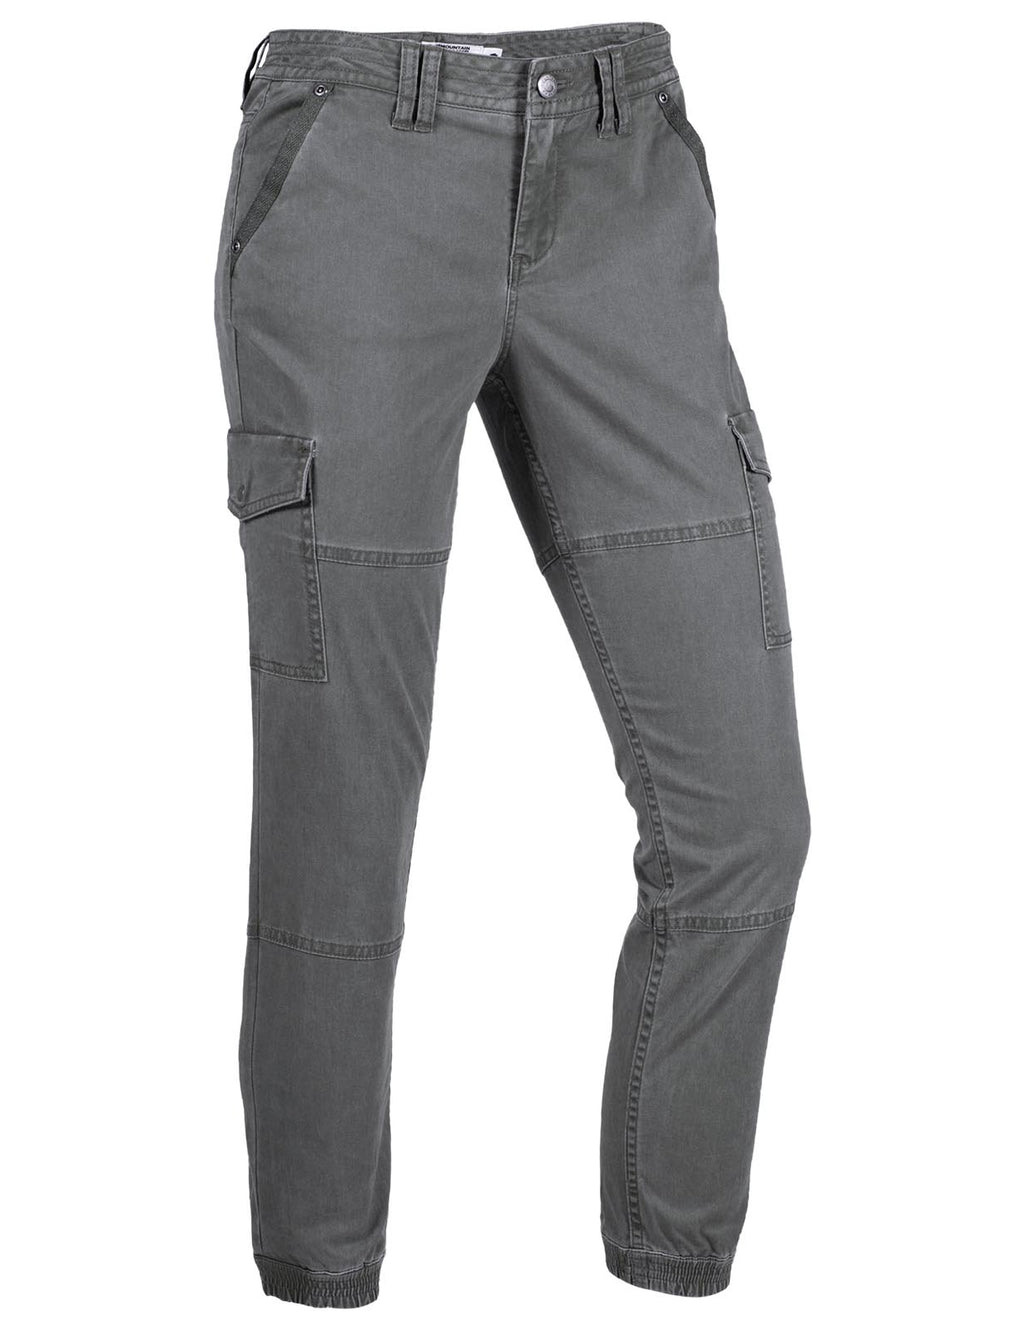 Women's Calamity Cargo Pant | Mountain Khakis. Women's hiking and outdoor lifestyle pants with cargo pockets and ribbed ankle cuff in gray color.